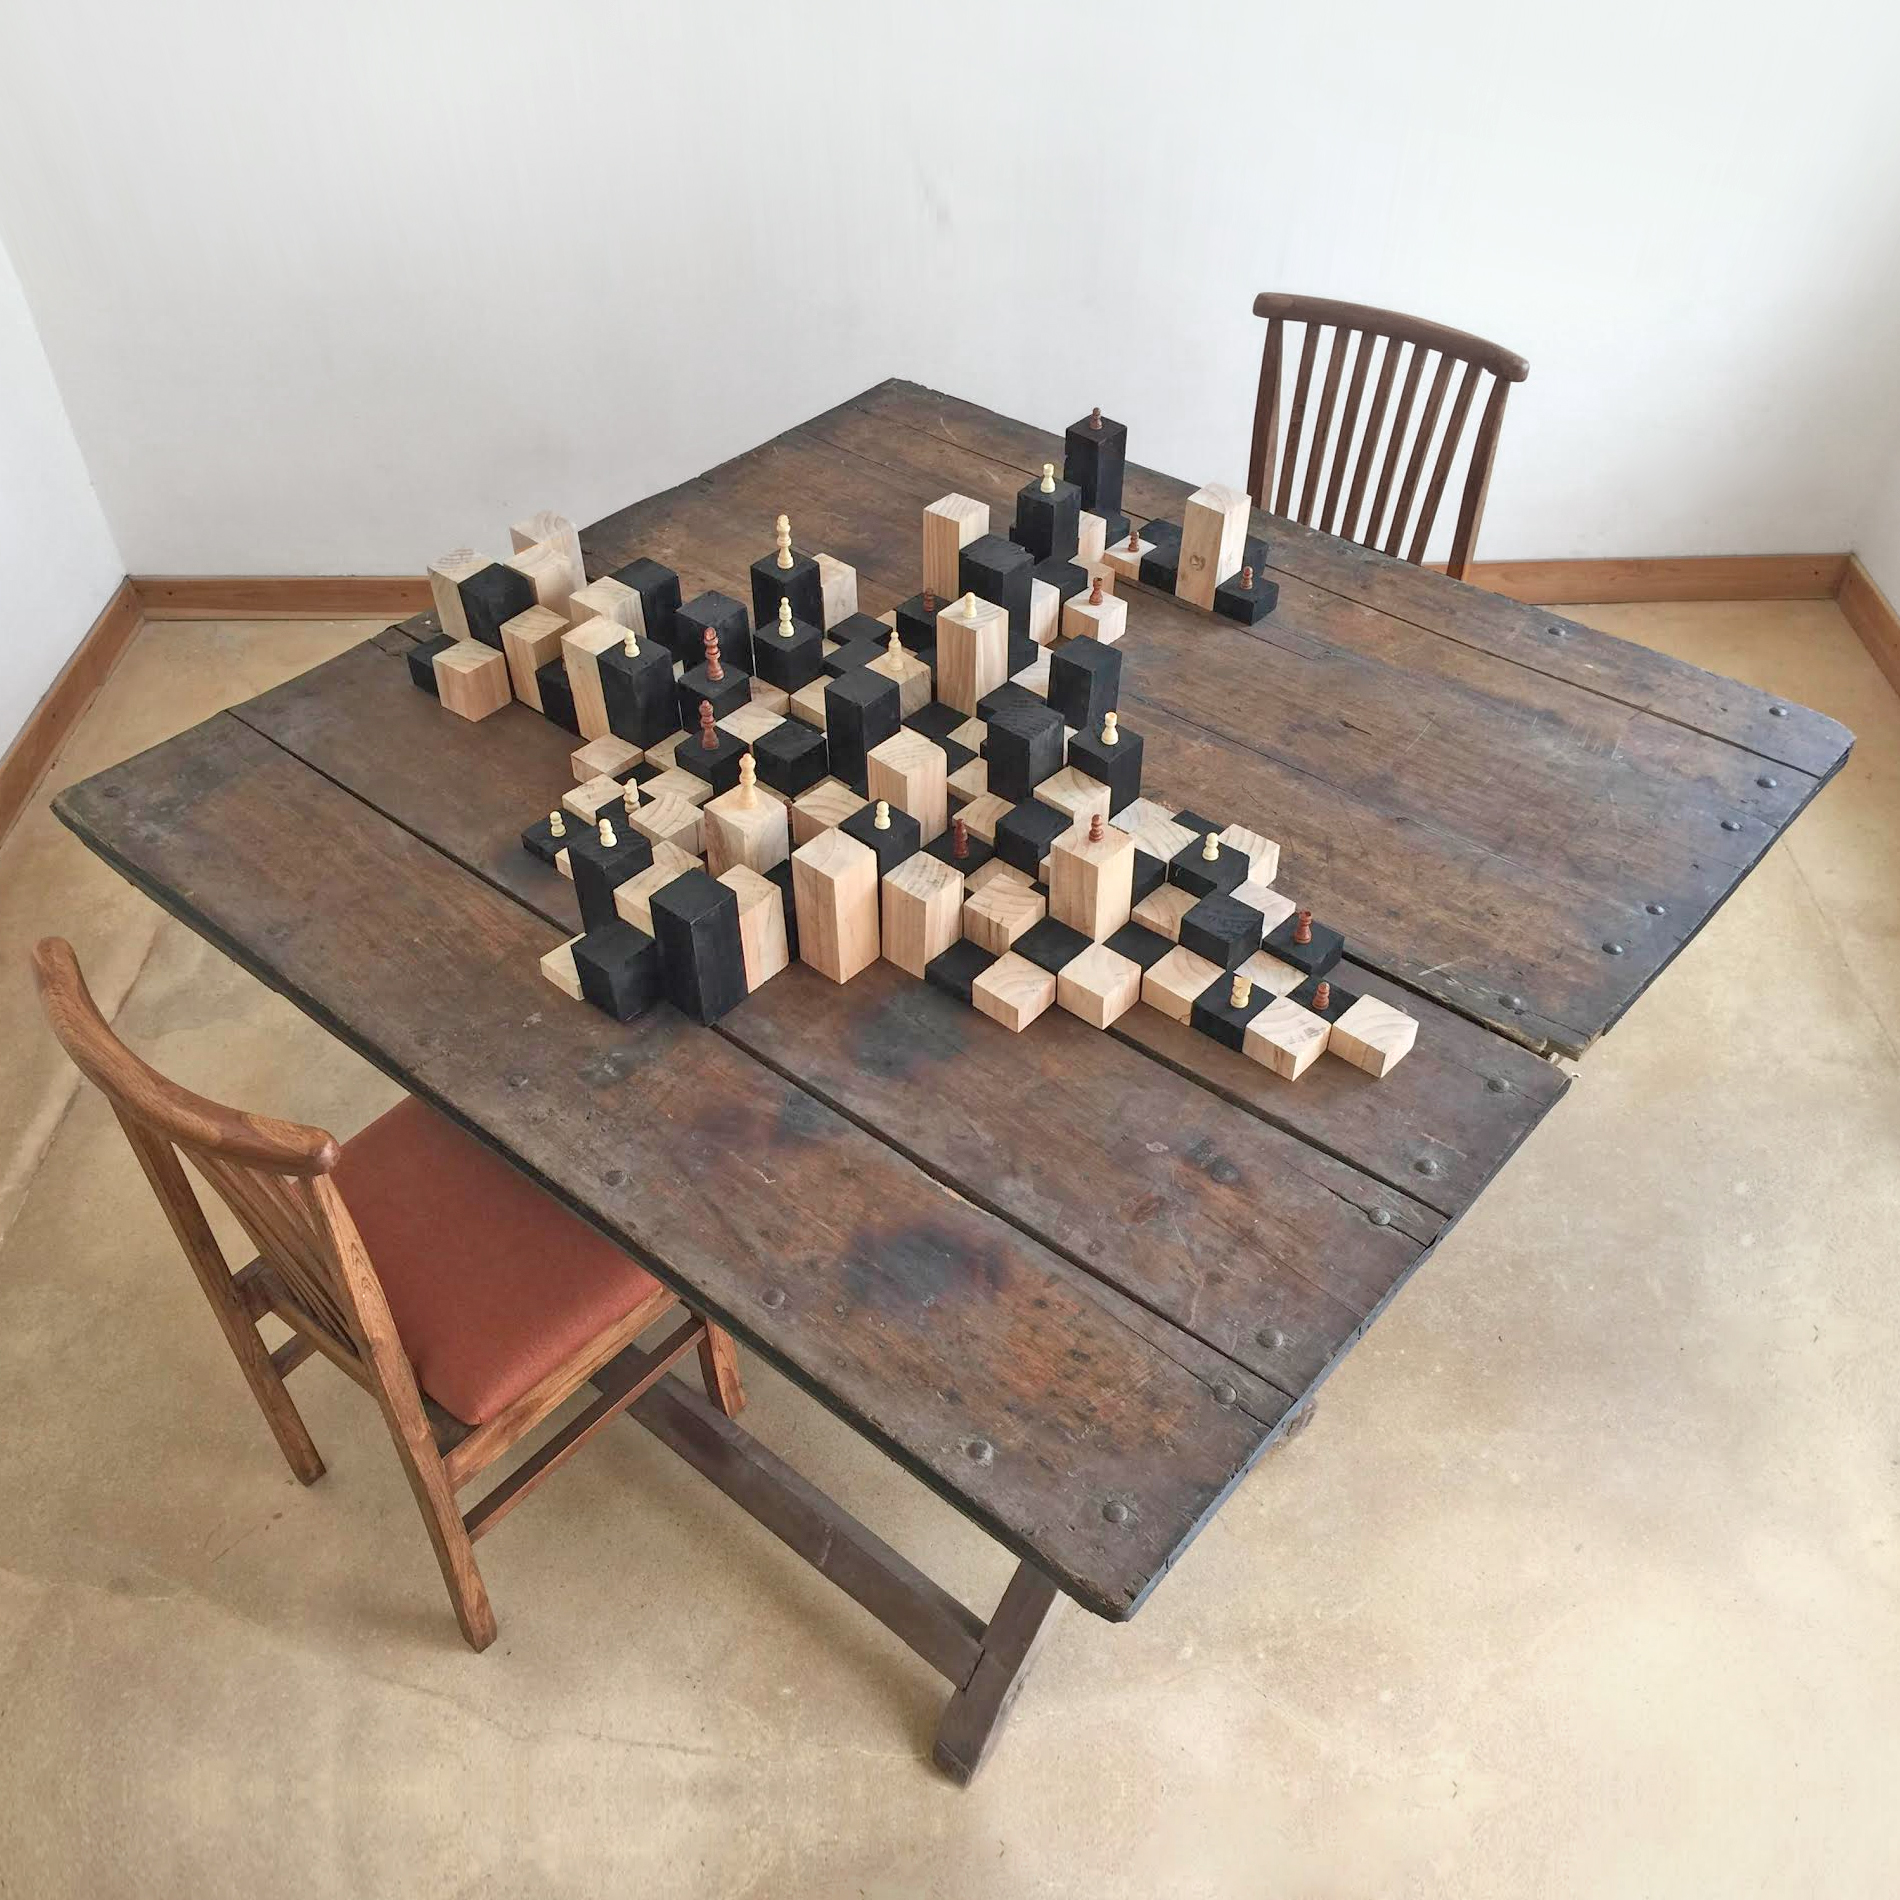 """2016 : """"The concept for my installation 'Powerplay' stems from the political scenario between the two major governments in India - Central and National Capital Delhi. The tensions, the tactics and the tantrums between them gave rise to a lot of dialogue amongst the public, with biases held on both sides and no clear winner.""""~ Kunel Gaur"""